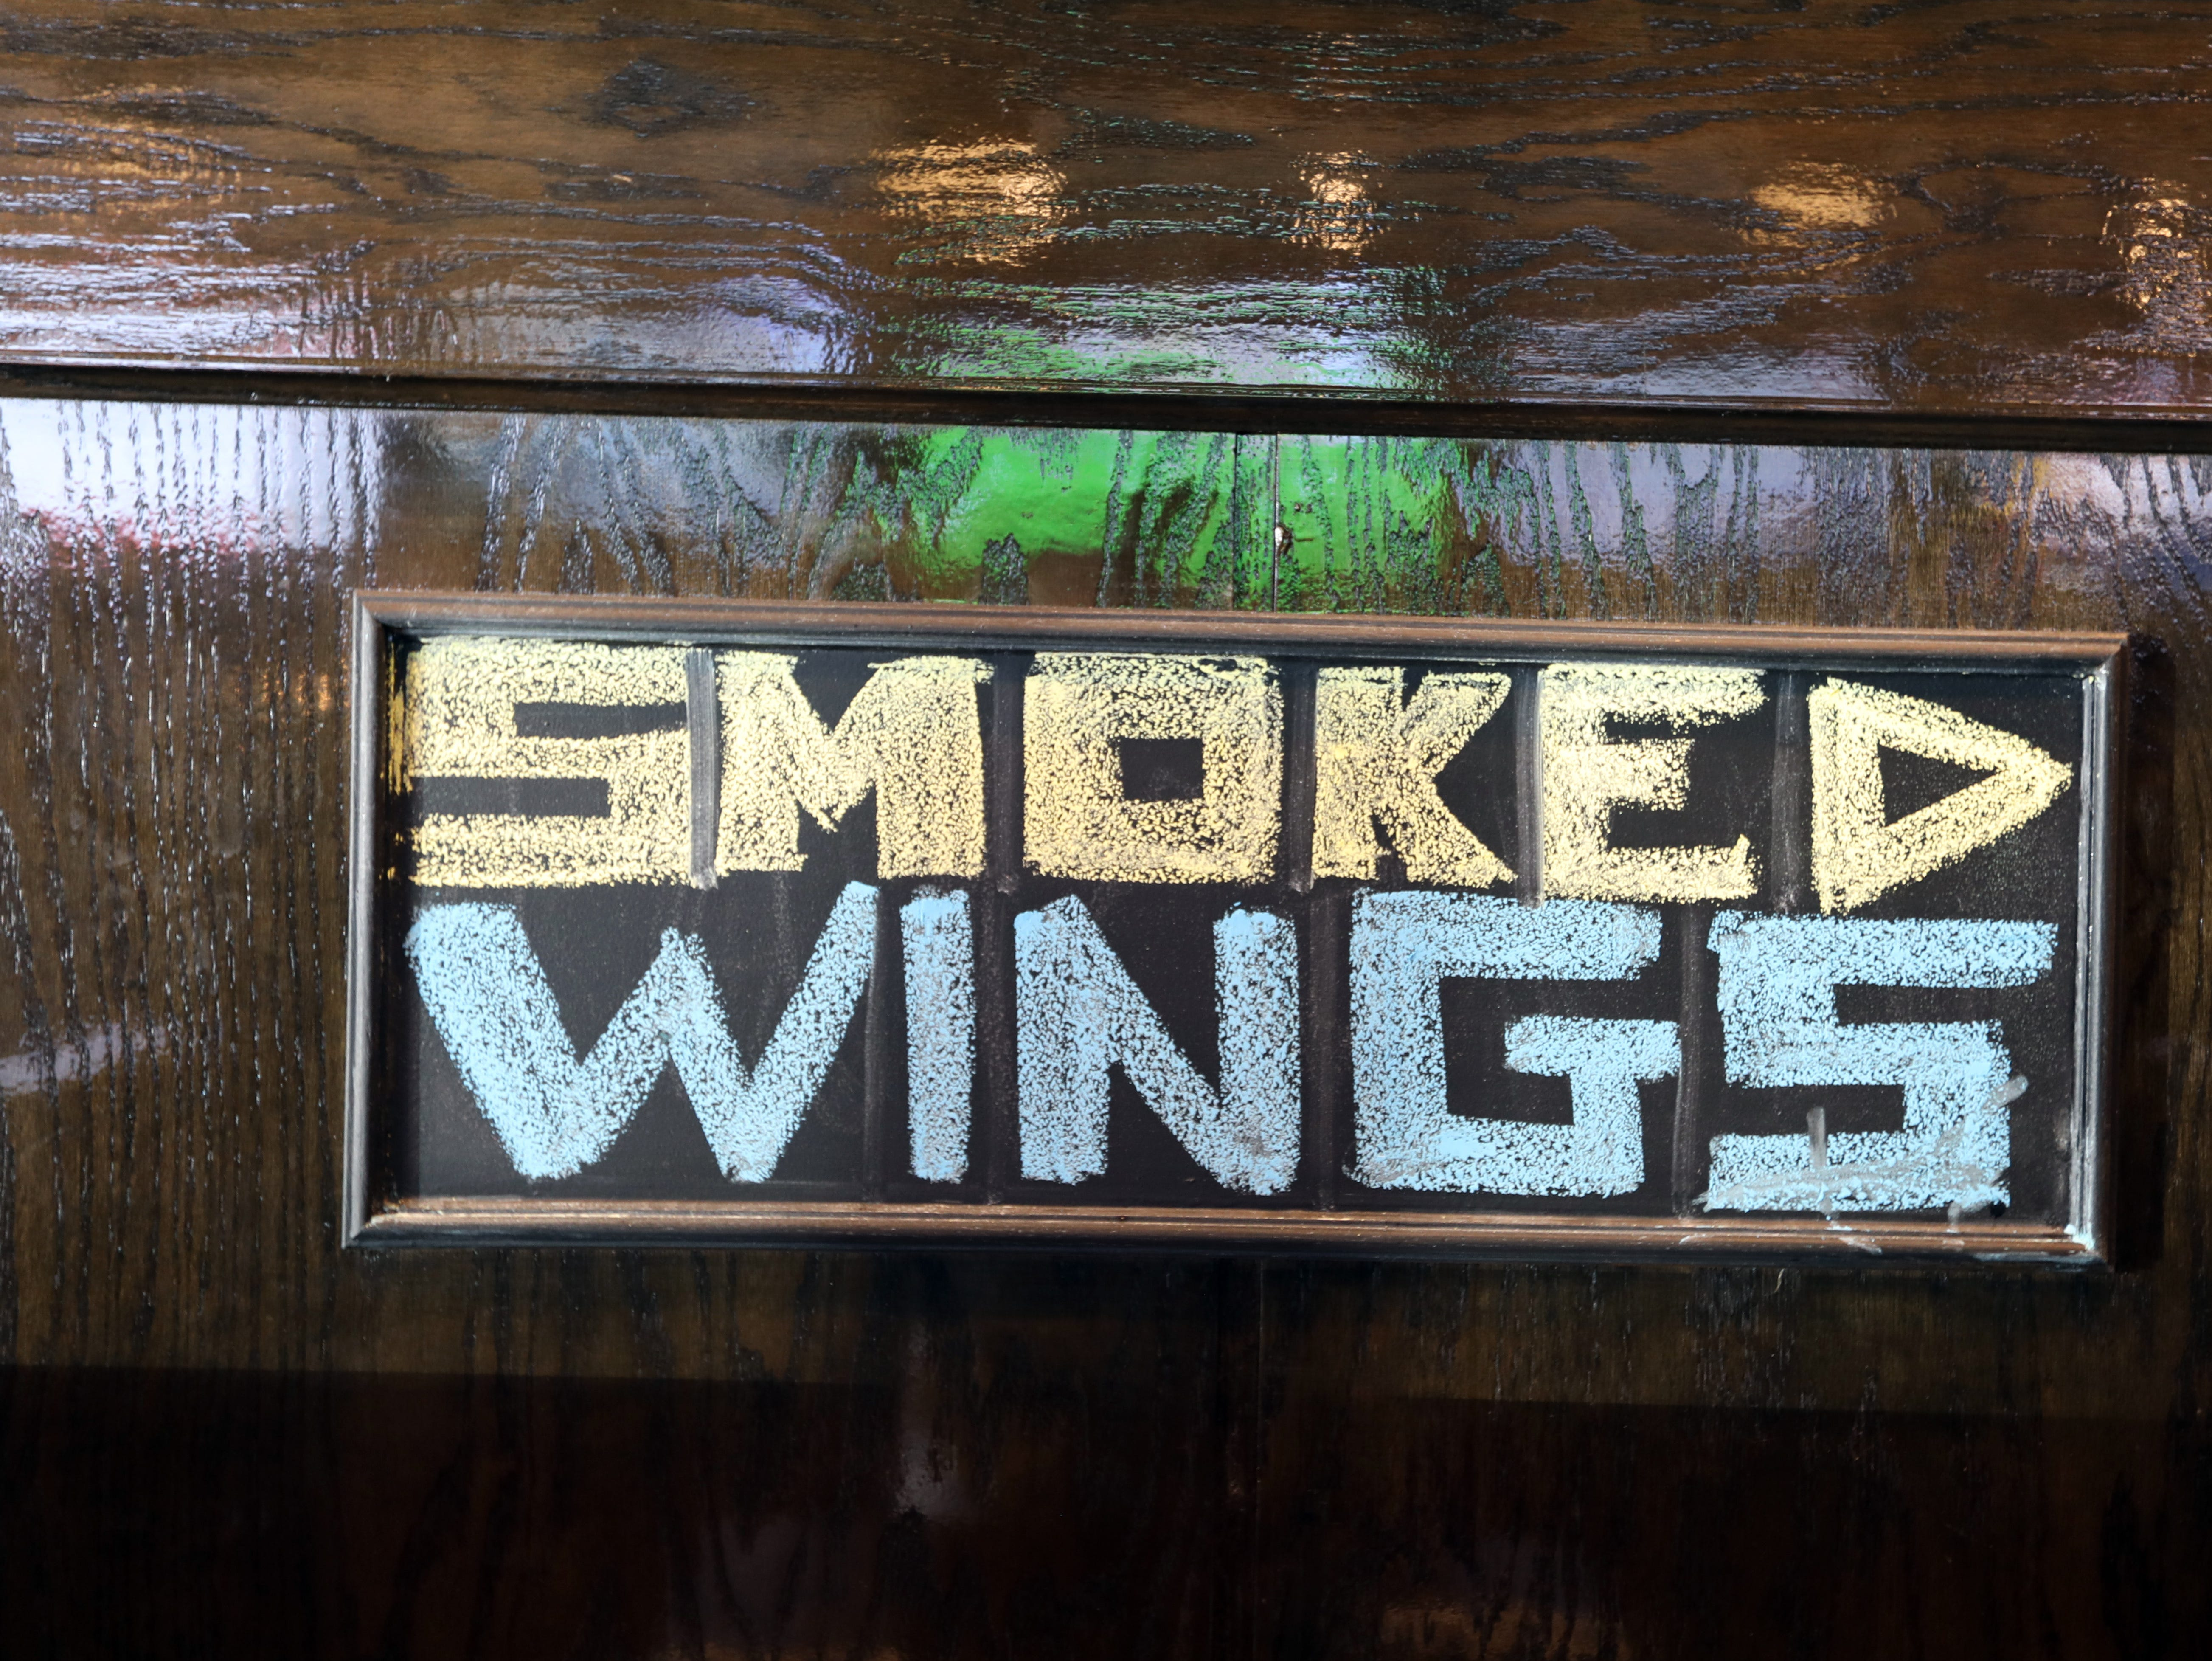 Smoked wings sign at the Foggy Bottom Tavern in New City Oct. 12, 2018.